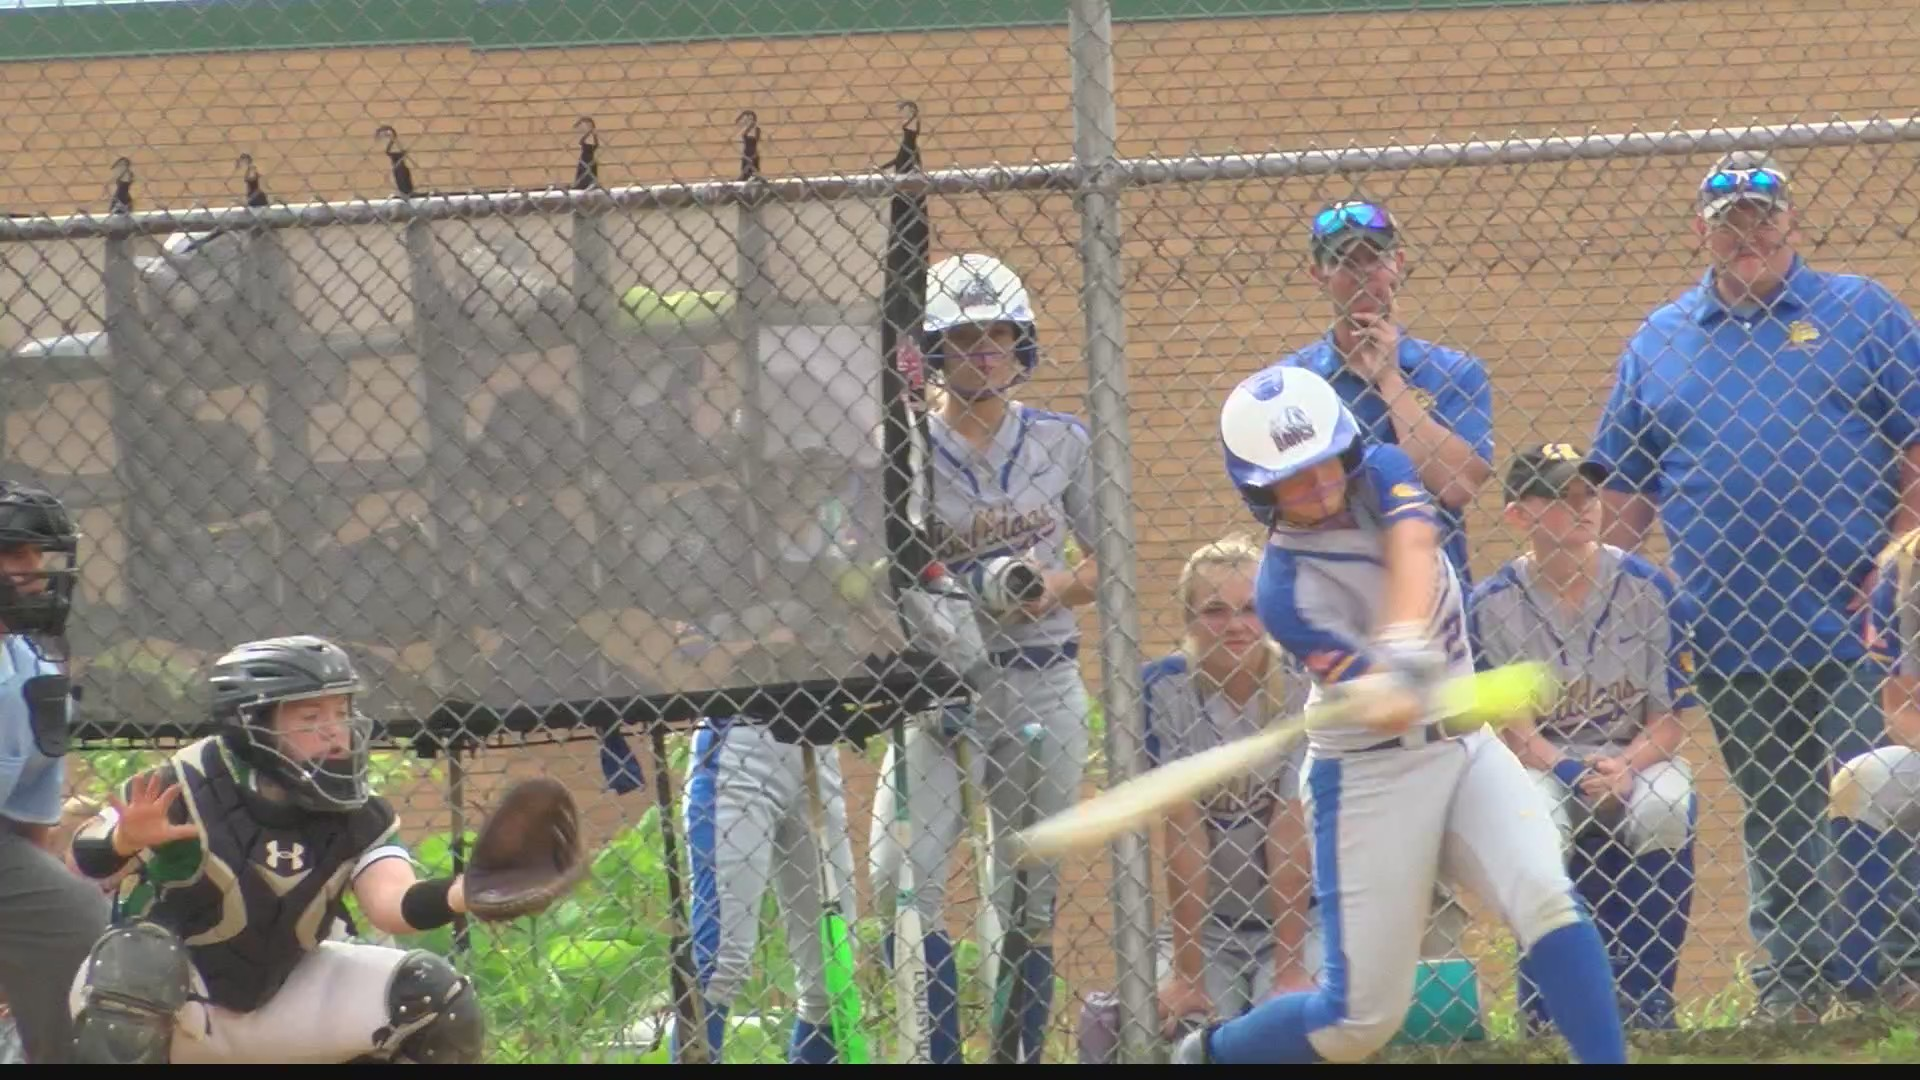 Claysburg powers their way to District Championship Game